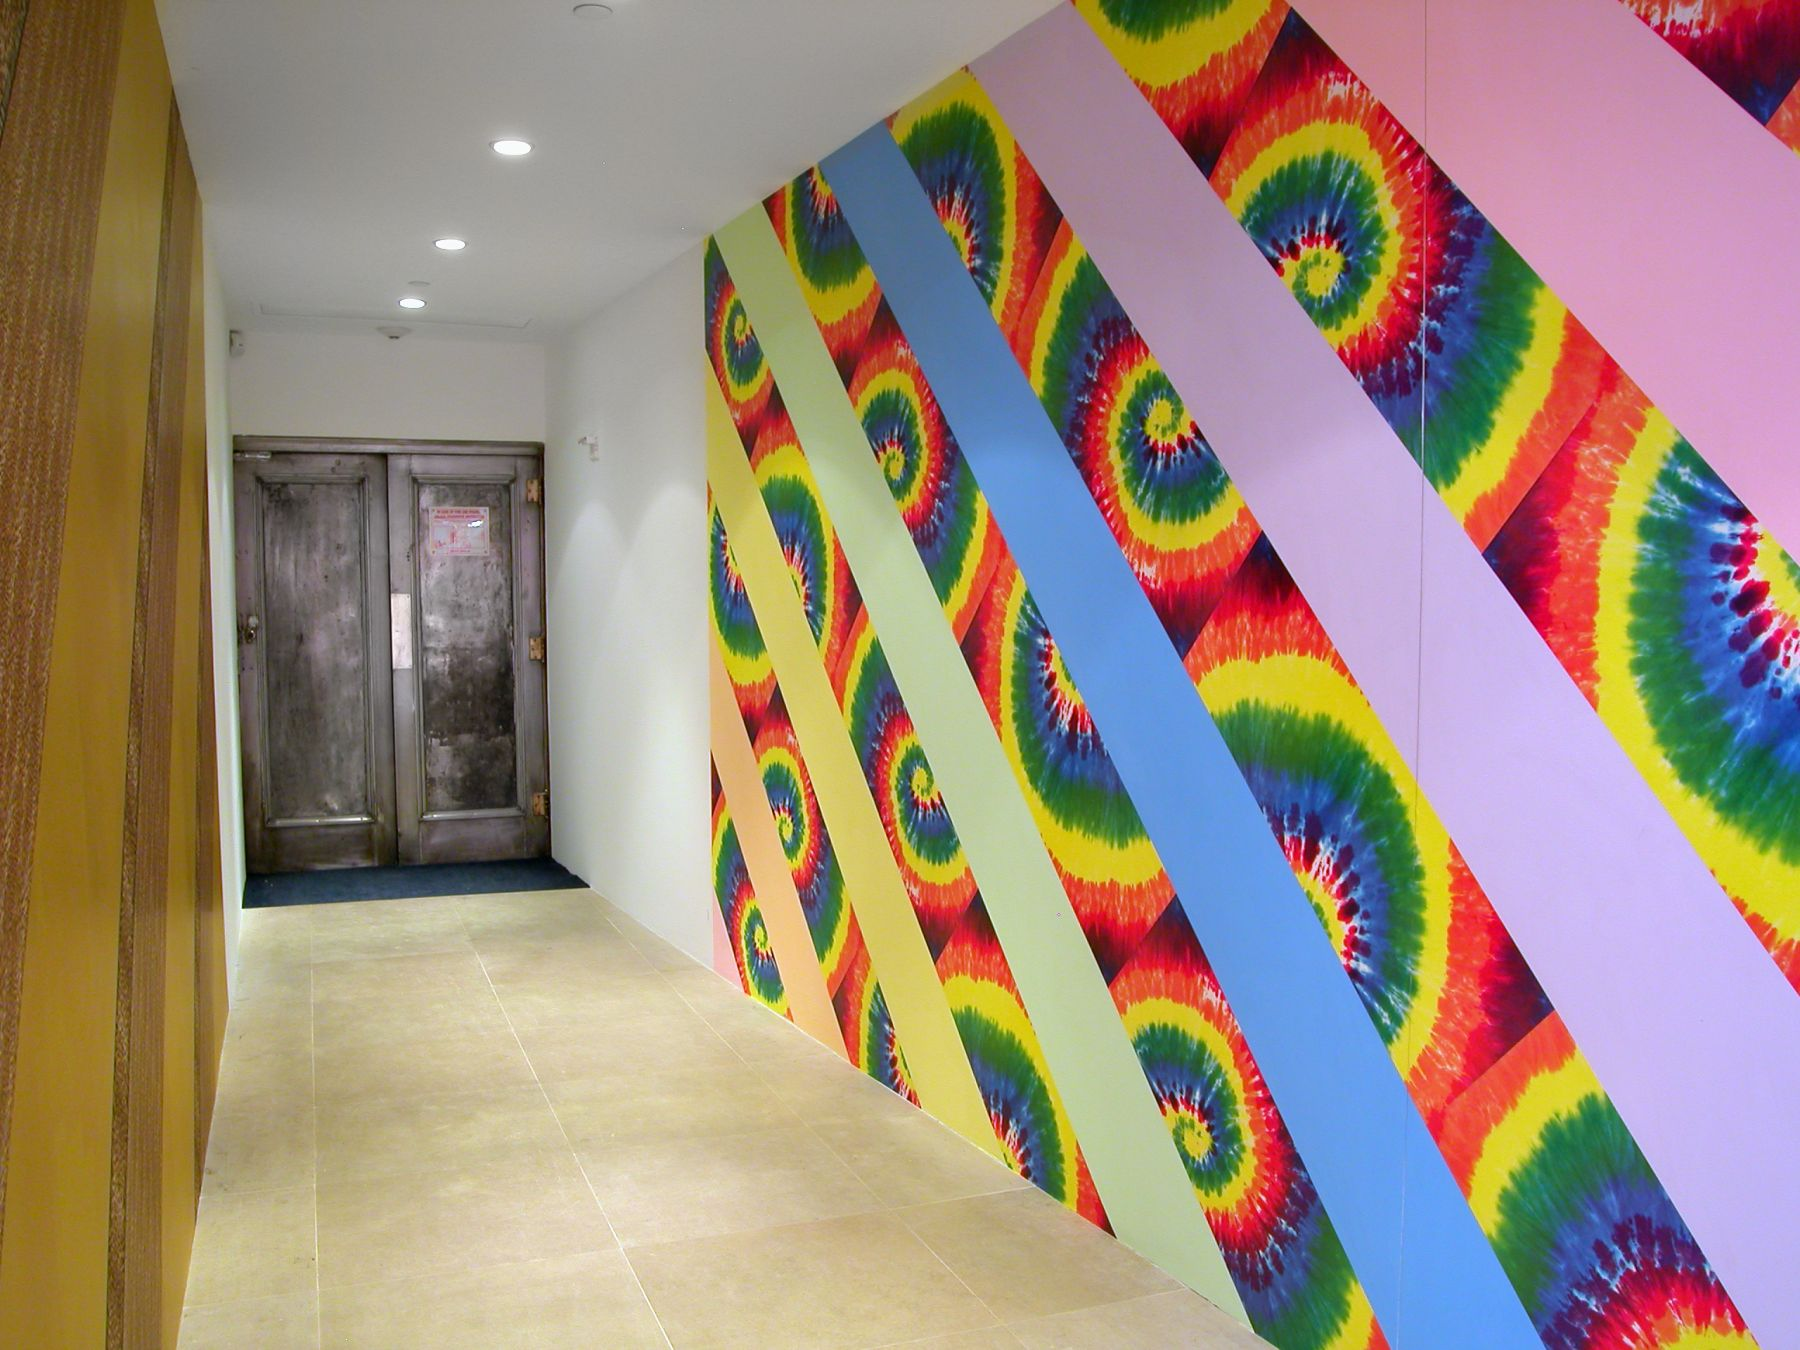 Jim Drain, I Would Gnaw on My Hand (Hallway), 2007, tie-dye and leopard print wallpaper, latex paint, Dimensions variable